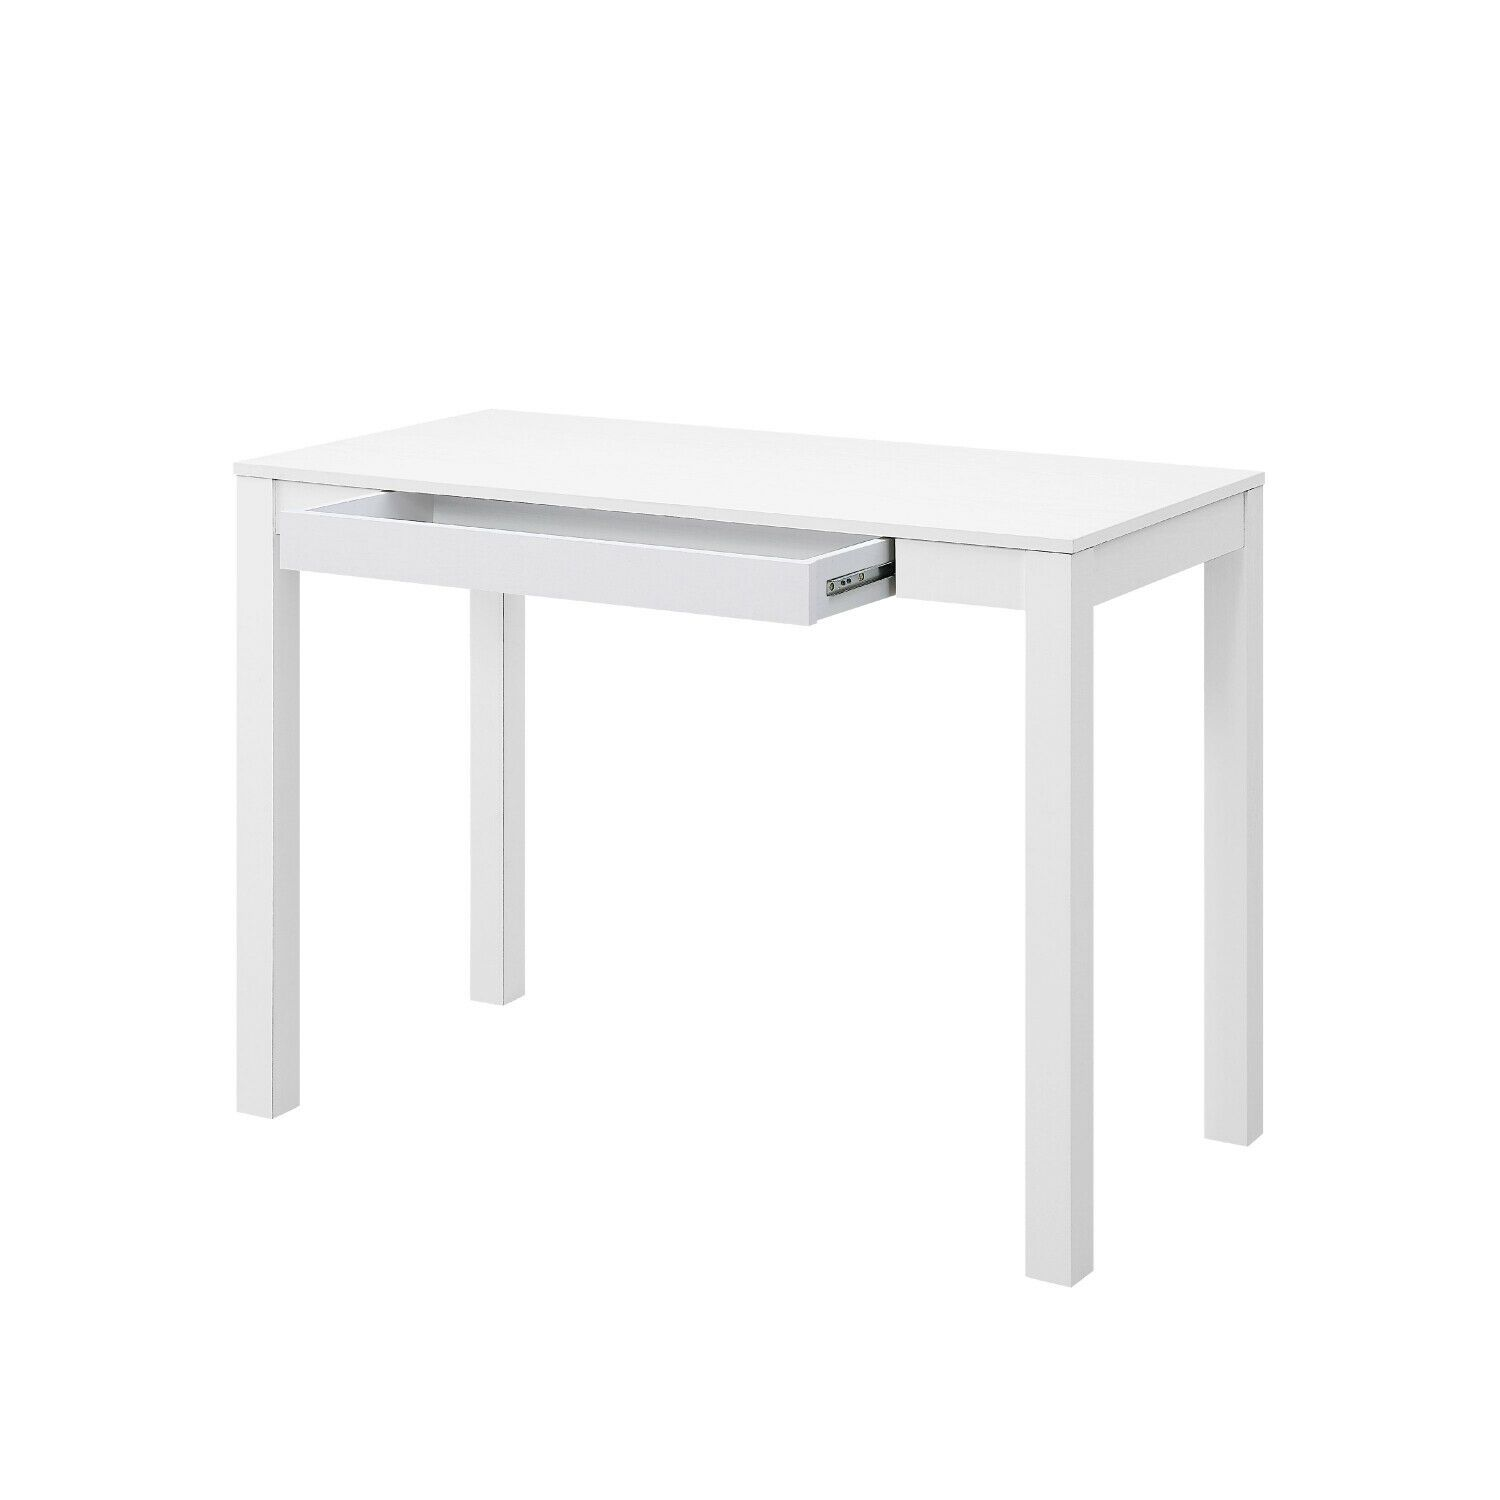 Details About White Parsons Writing Desk With Large Storage Drawer